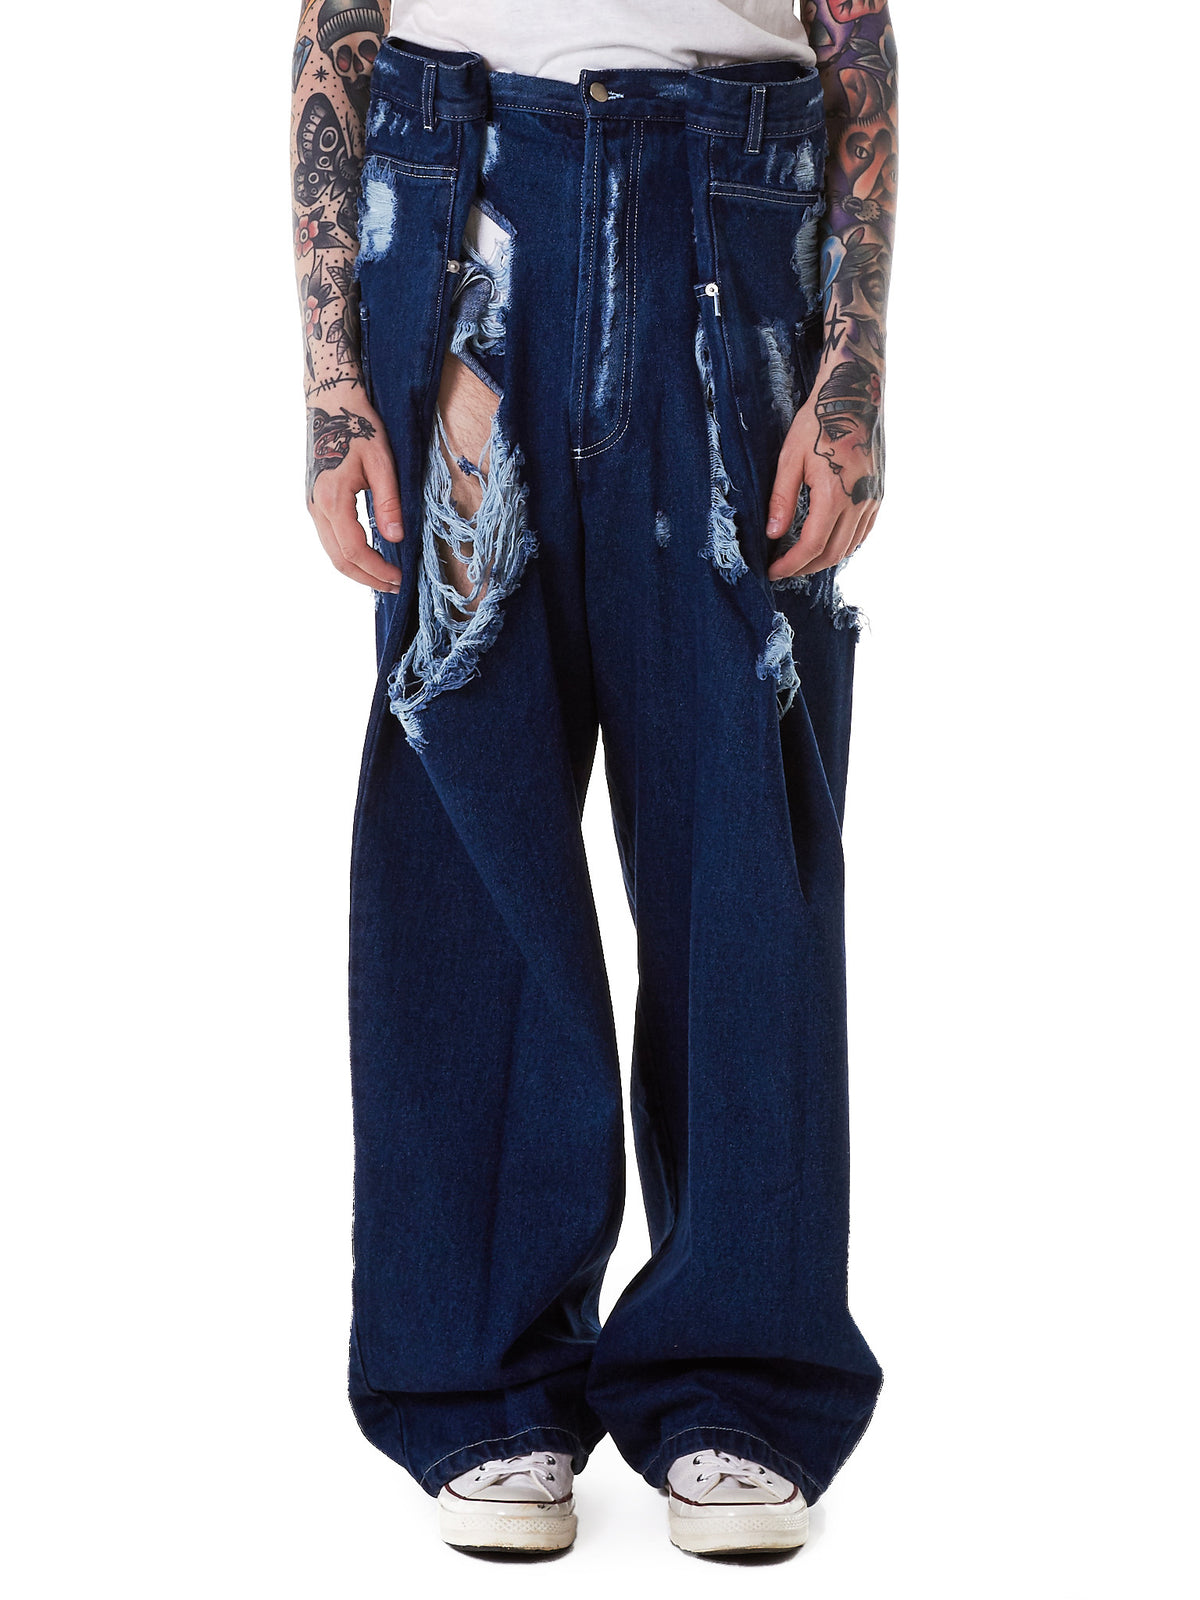 Relaxed Destroyed Denim Jeans (JEAN06-C-FRAYED-DARK-BLUE) - H. Lorenzo